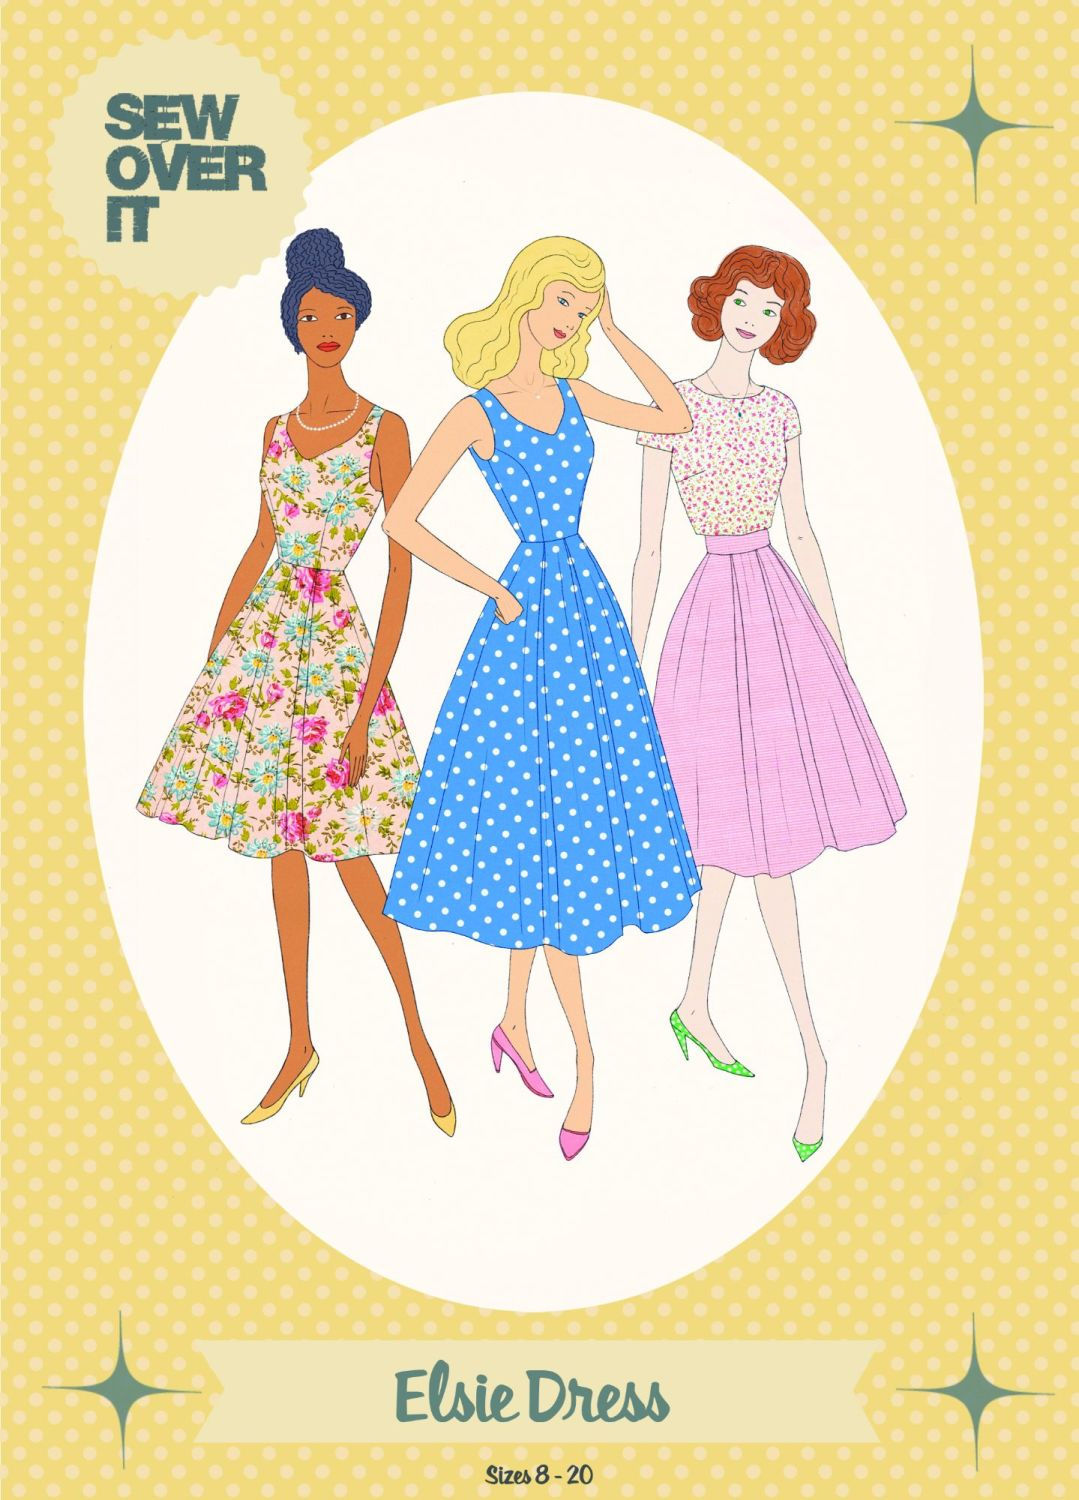 Elsie Dress and Skirt Sewing Pattern